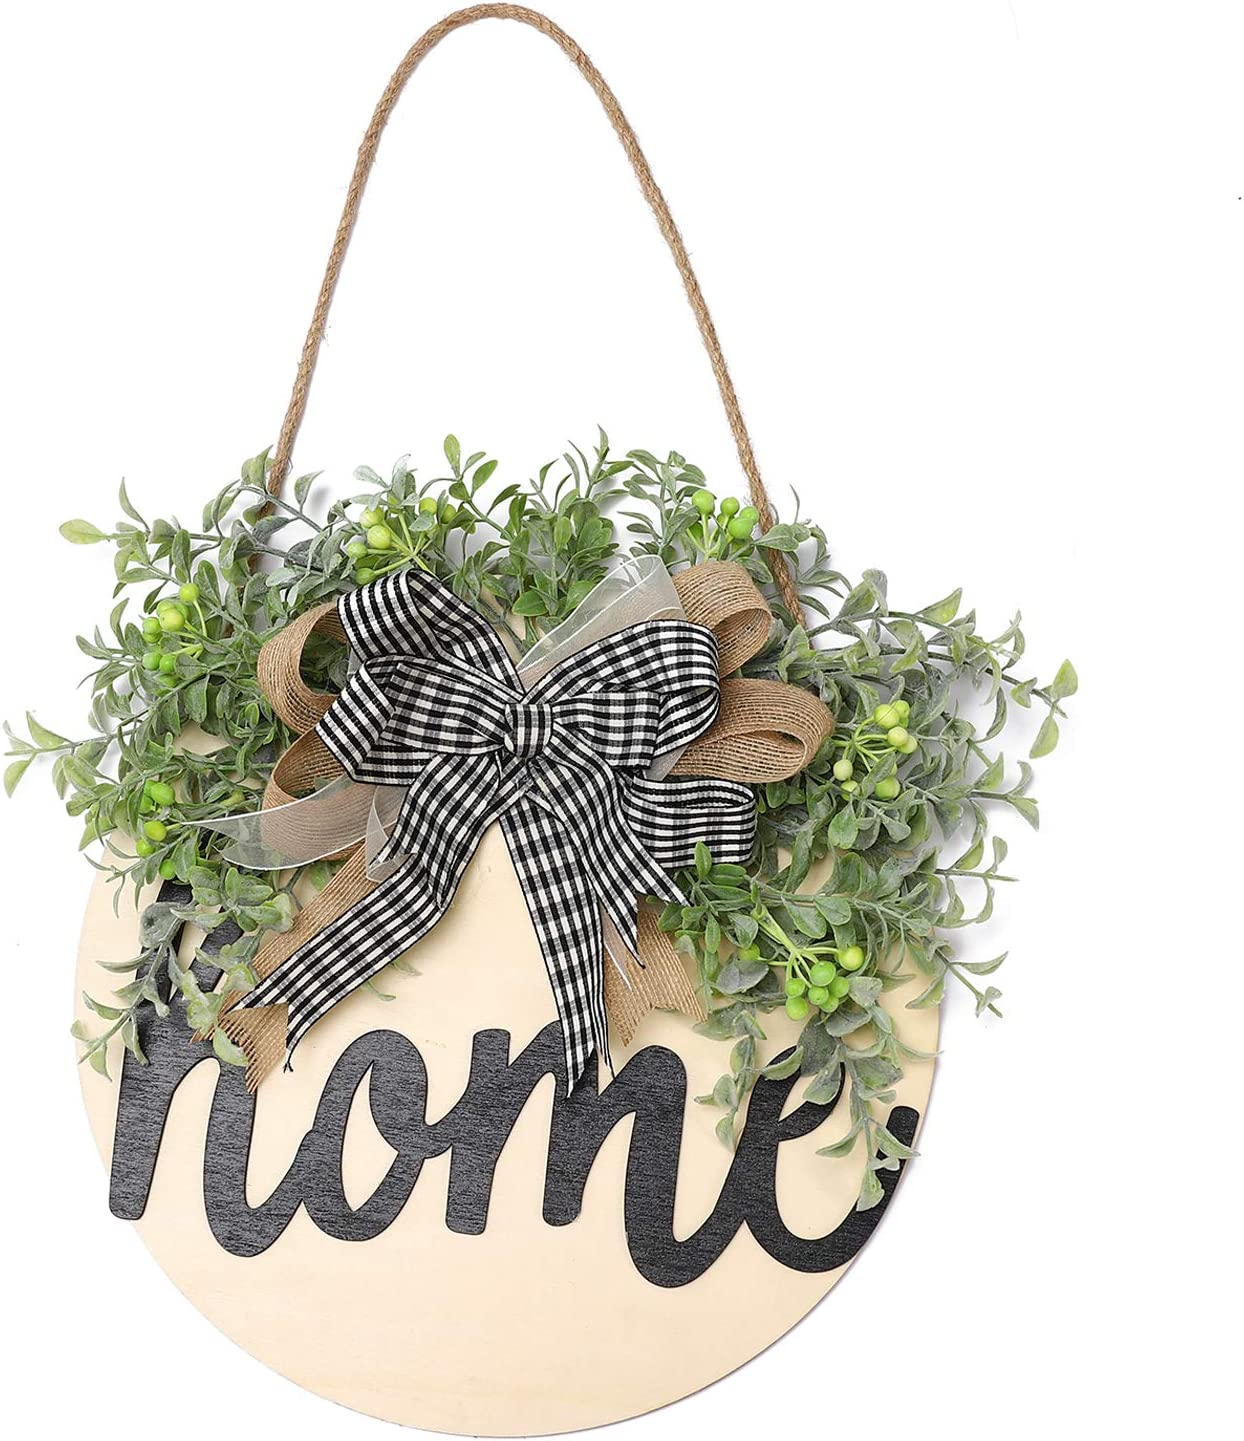 Welcome Sign Home Front Door Round Wood Sign Hanging Welcome Sign for Farmhouse Porch Decoration, Thanksgiving Christmas Decoration (Black Letters Home)